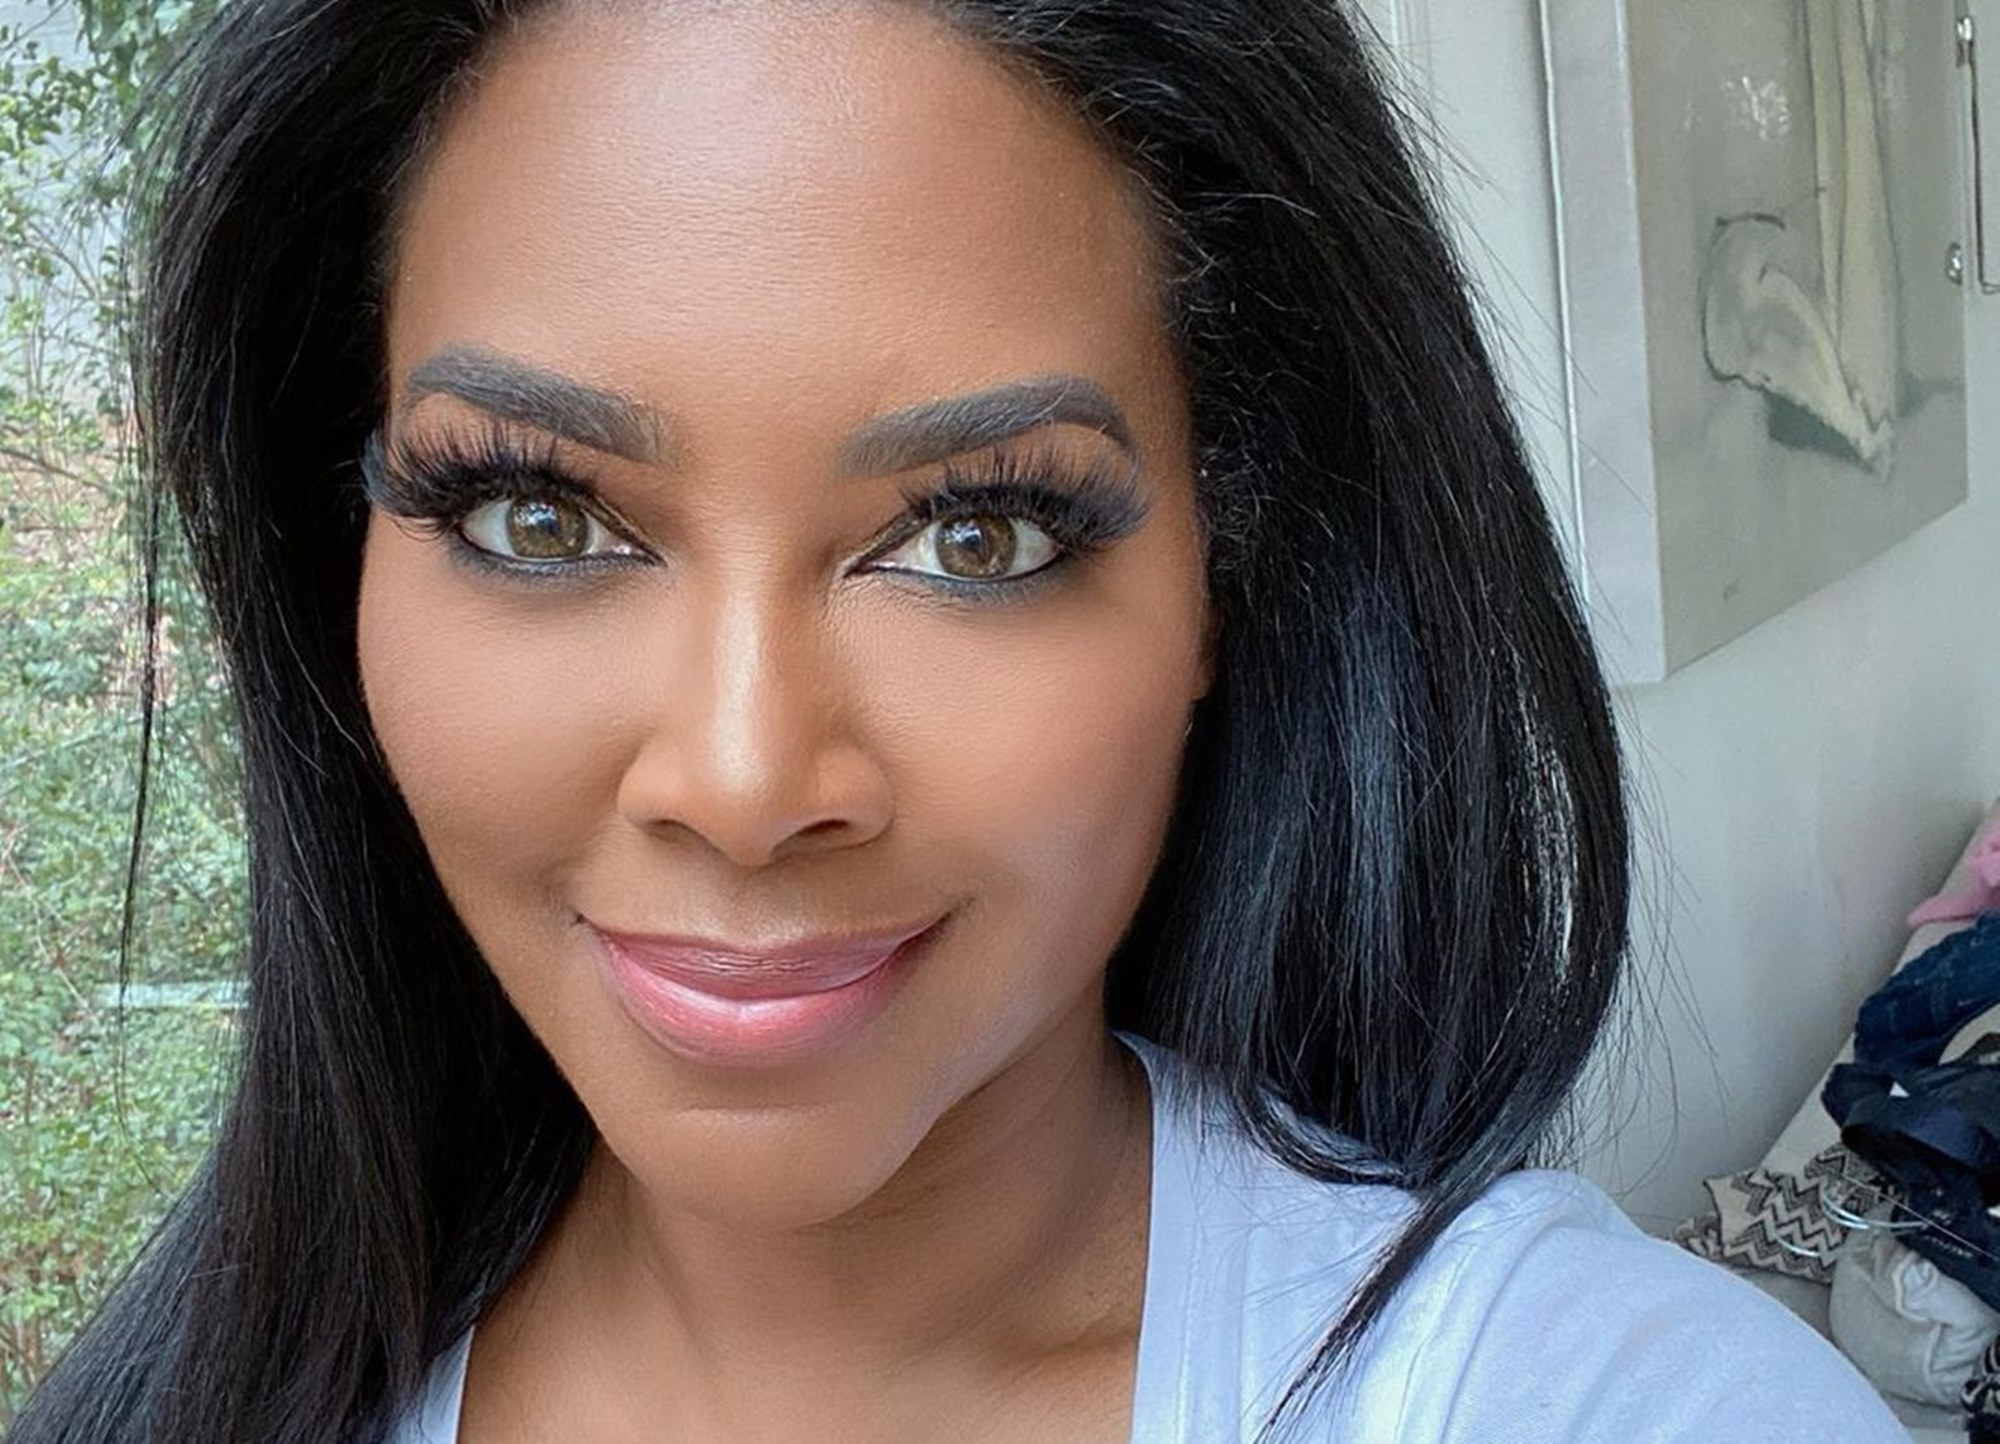 Kenya Moore Continues To Ask For Justice For Breonna Taylor